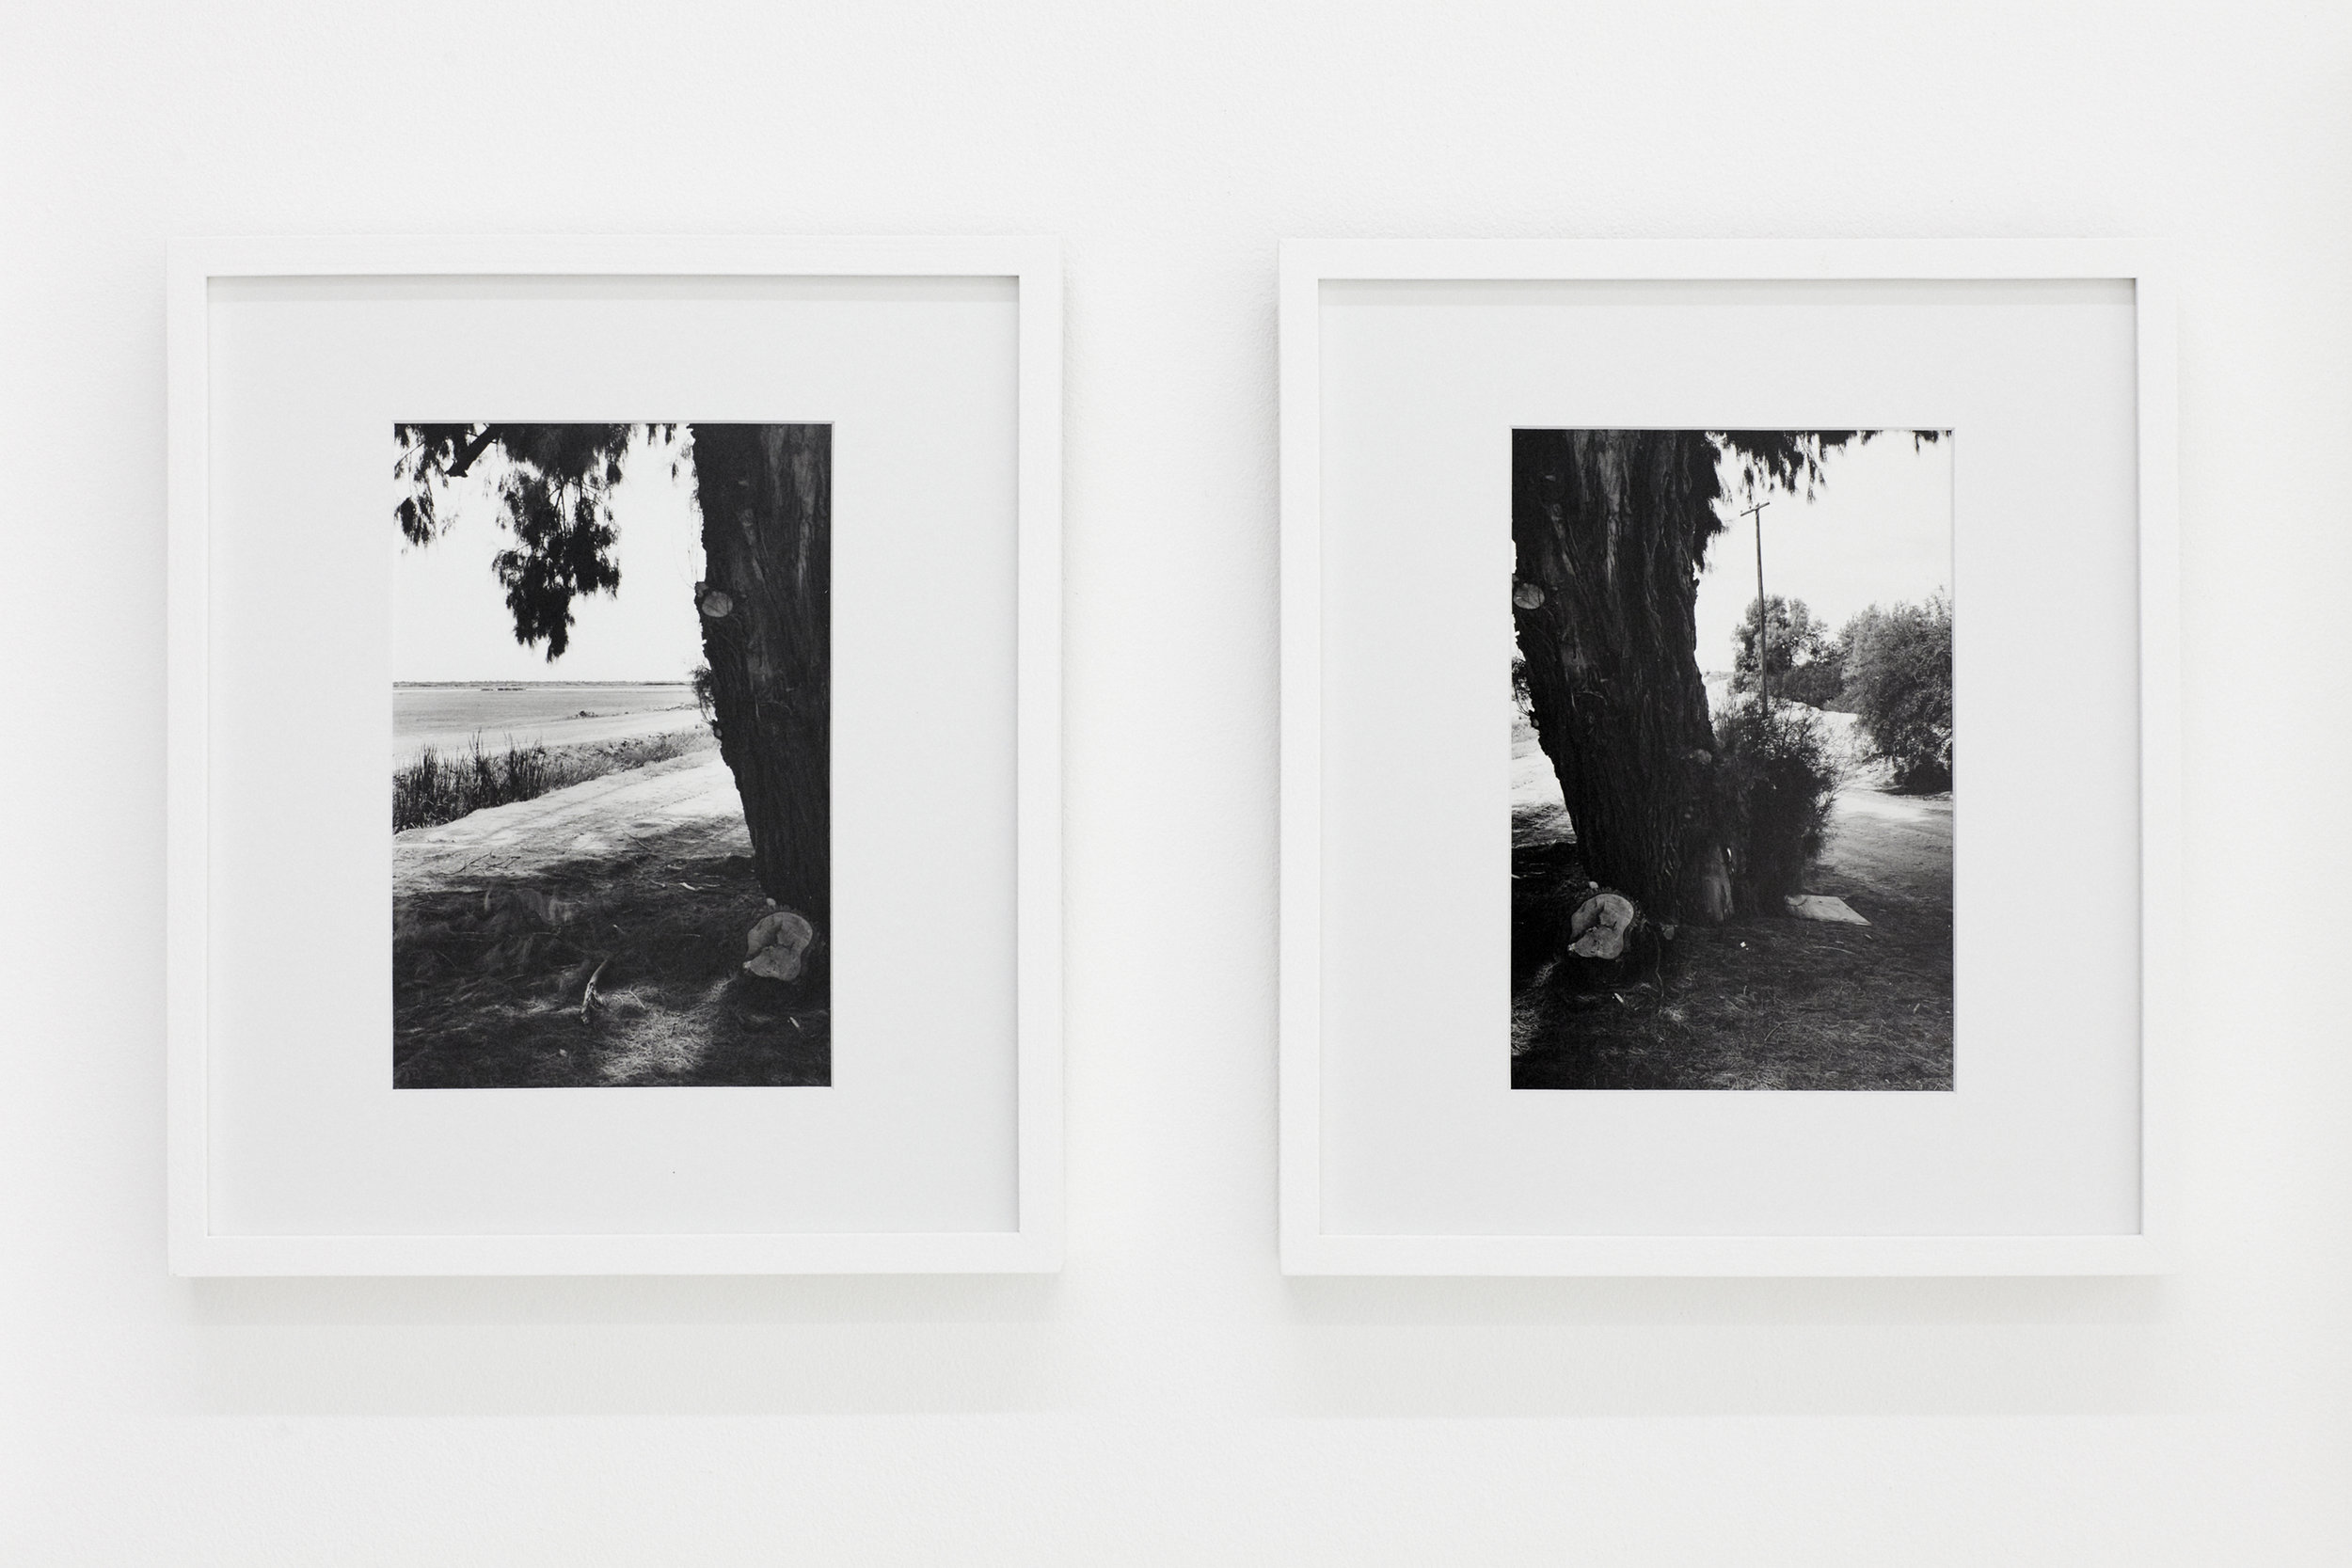 '62, California', (2017)   Silver gelatin   prints. Framed diptych    8x10 in, silver gelatin prints.     Edition of 3